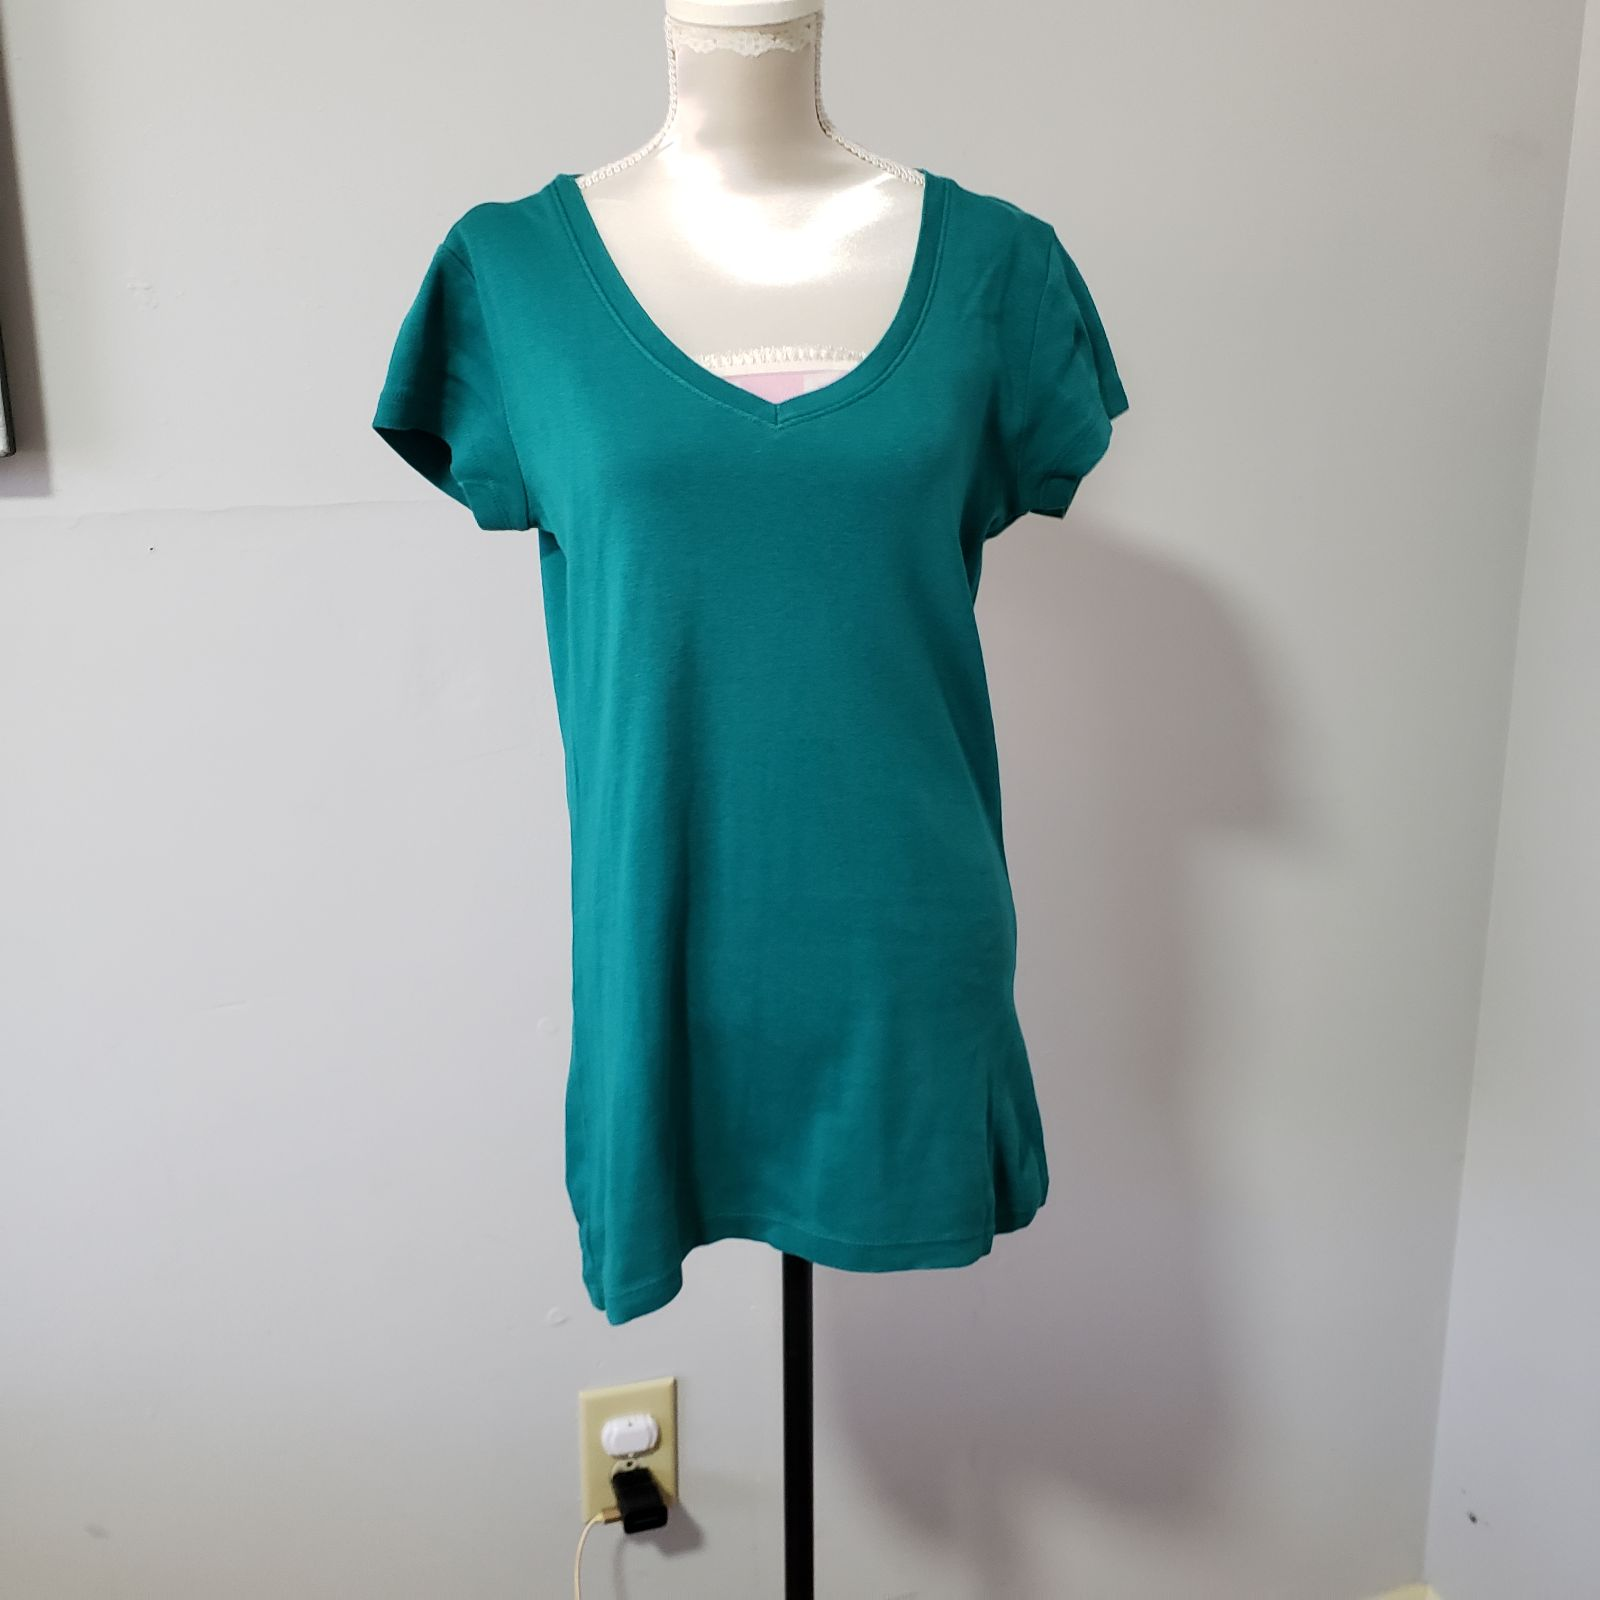 JCPENNEY top Size S